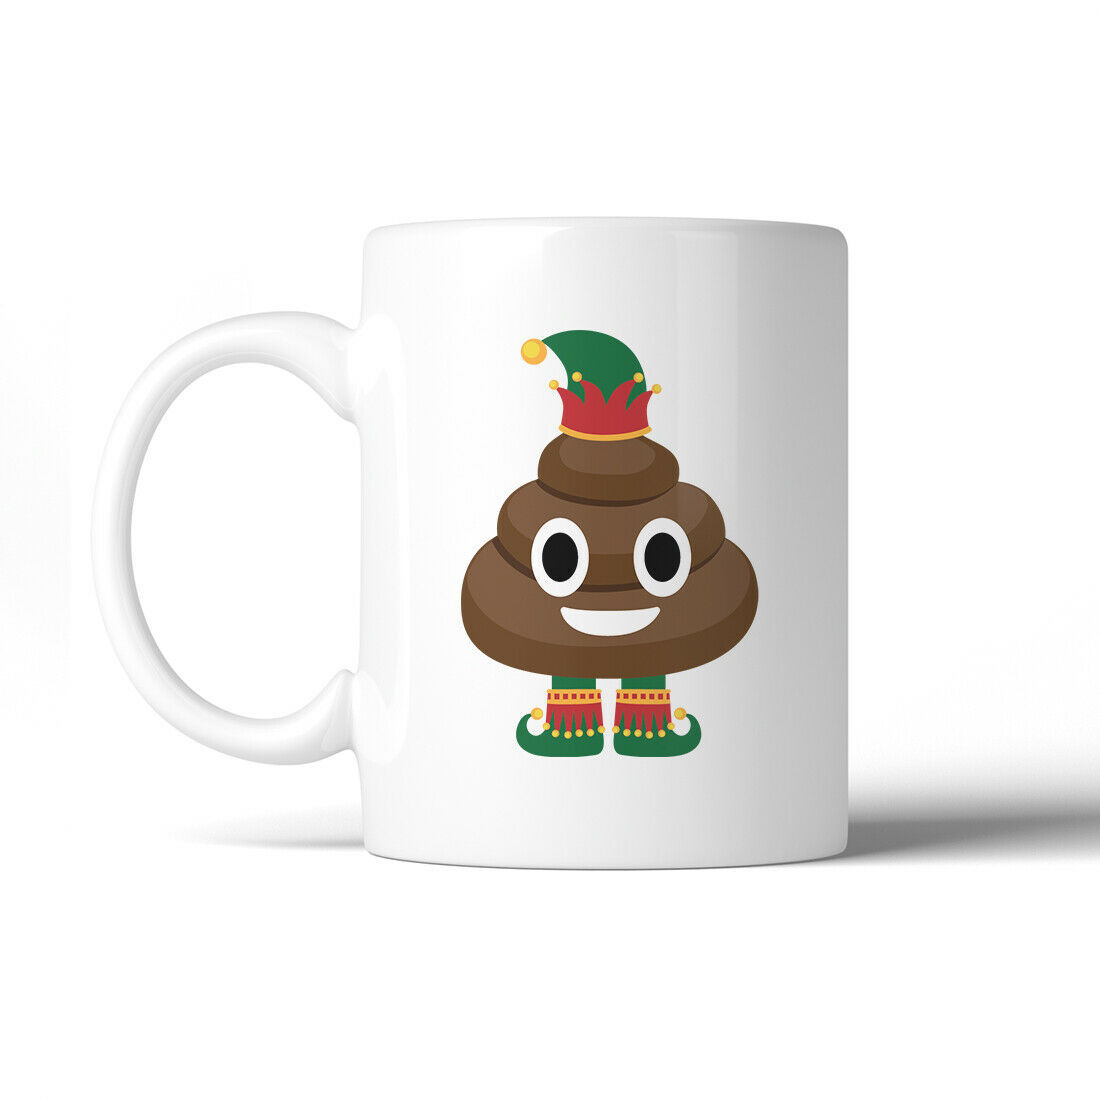 Primary image for 365 Printing Poop Elf Cute Holiday WHITE Mug X-mas Present